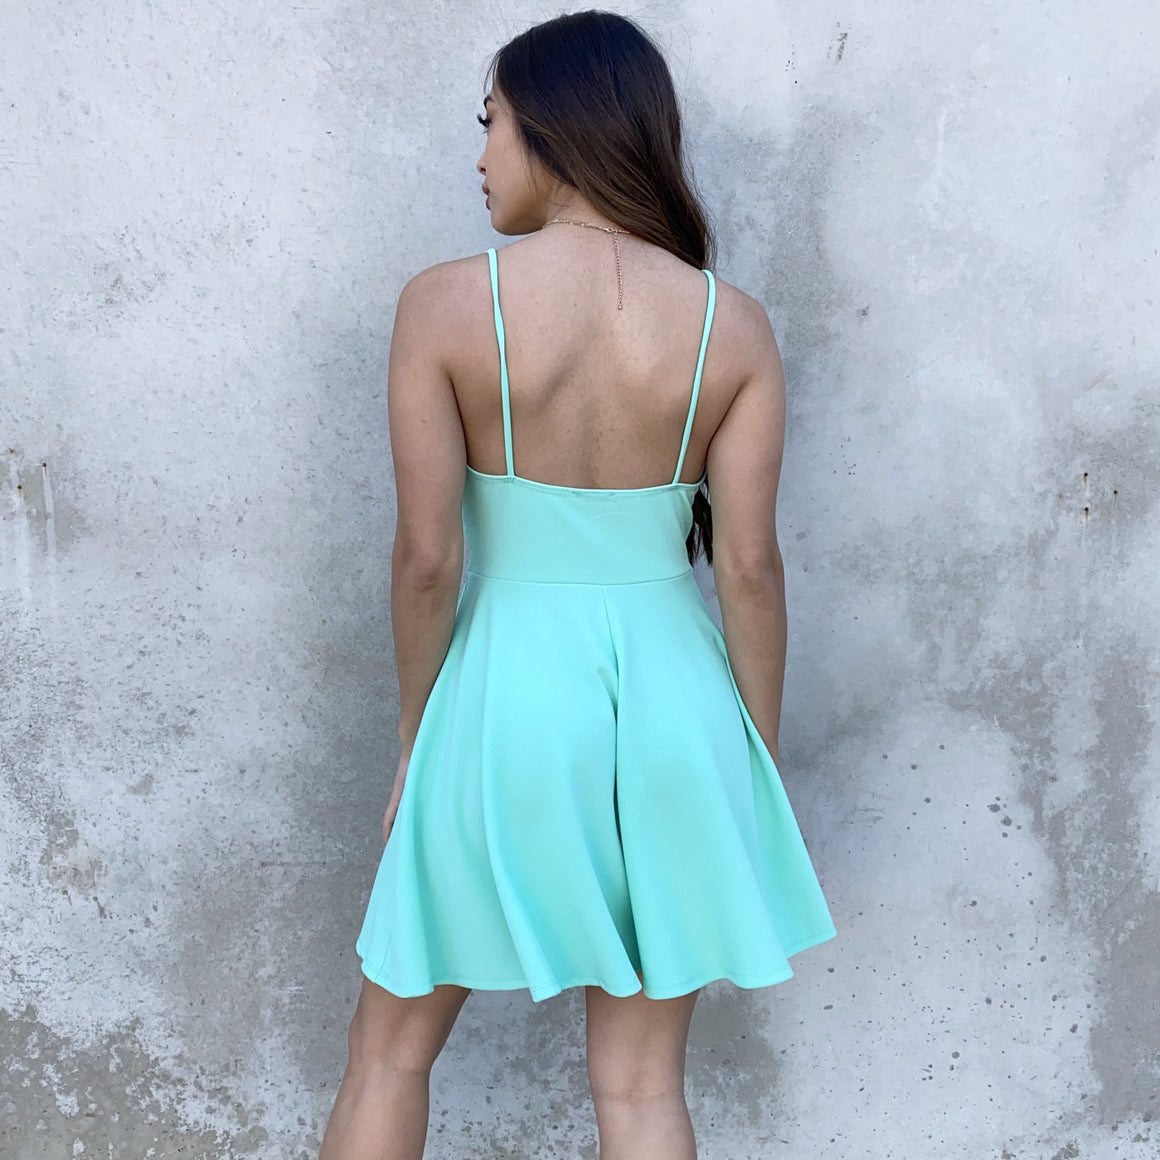 Swing In & Out Of Love Aqua Skater Dress